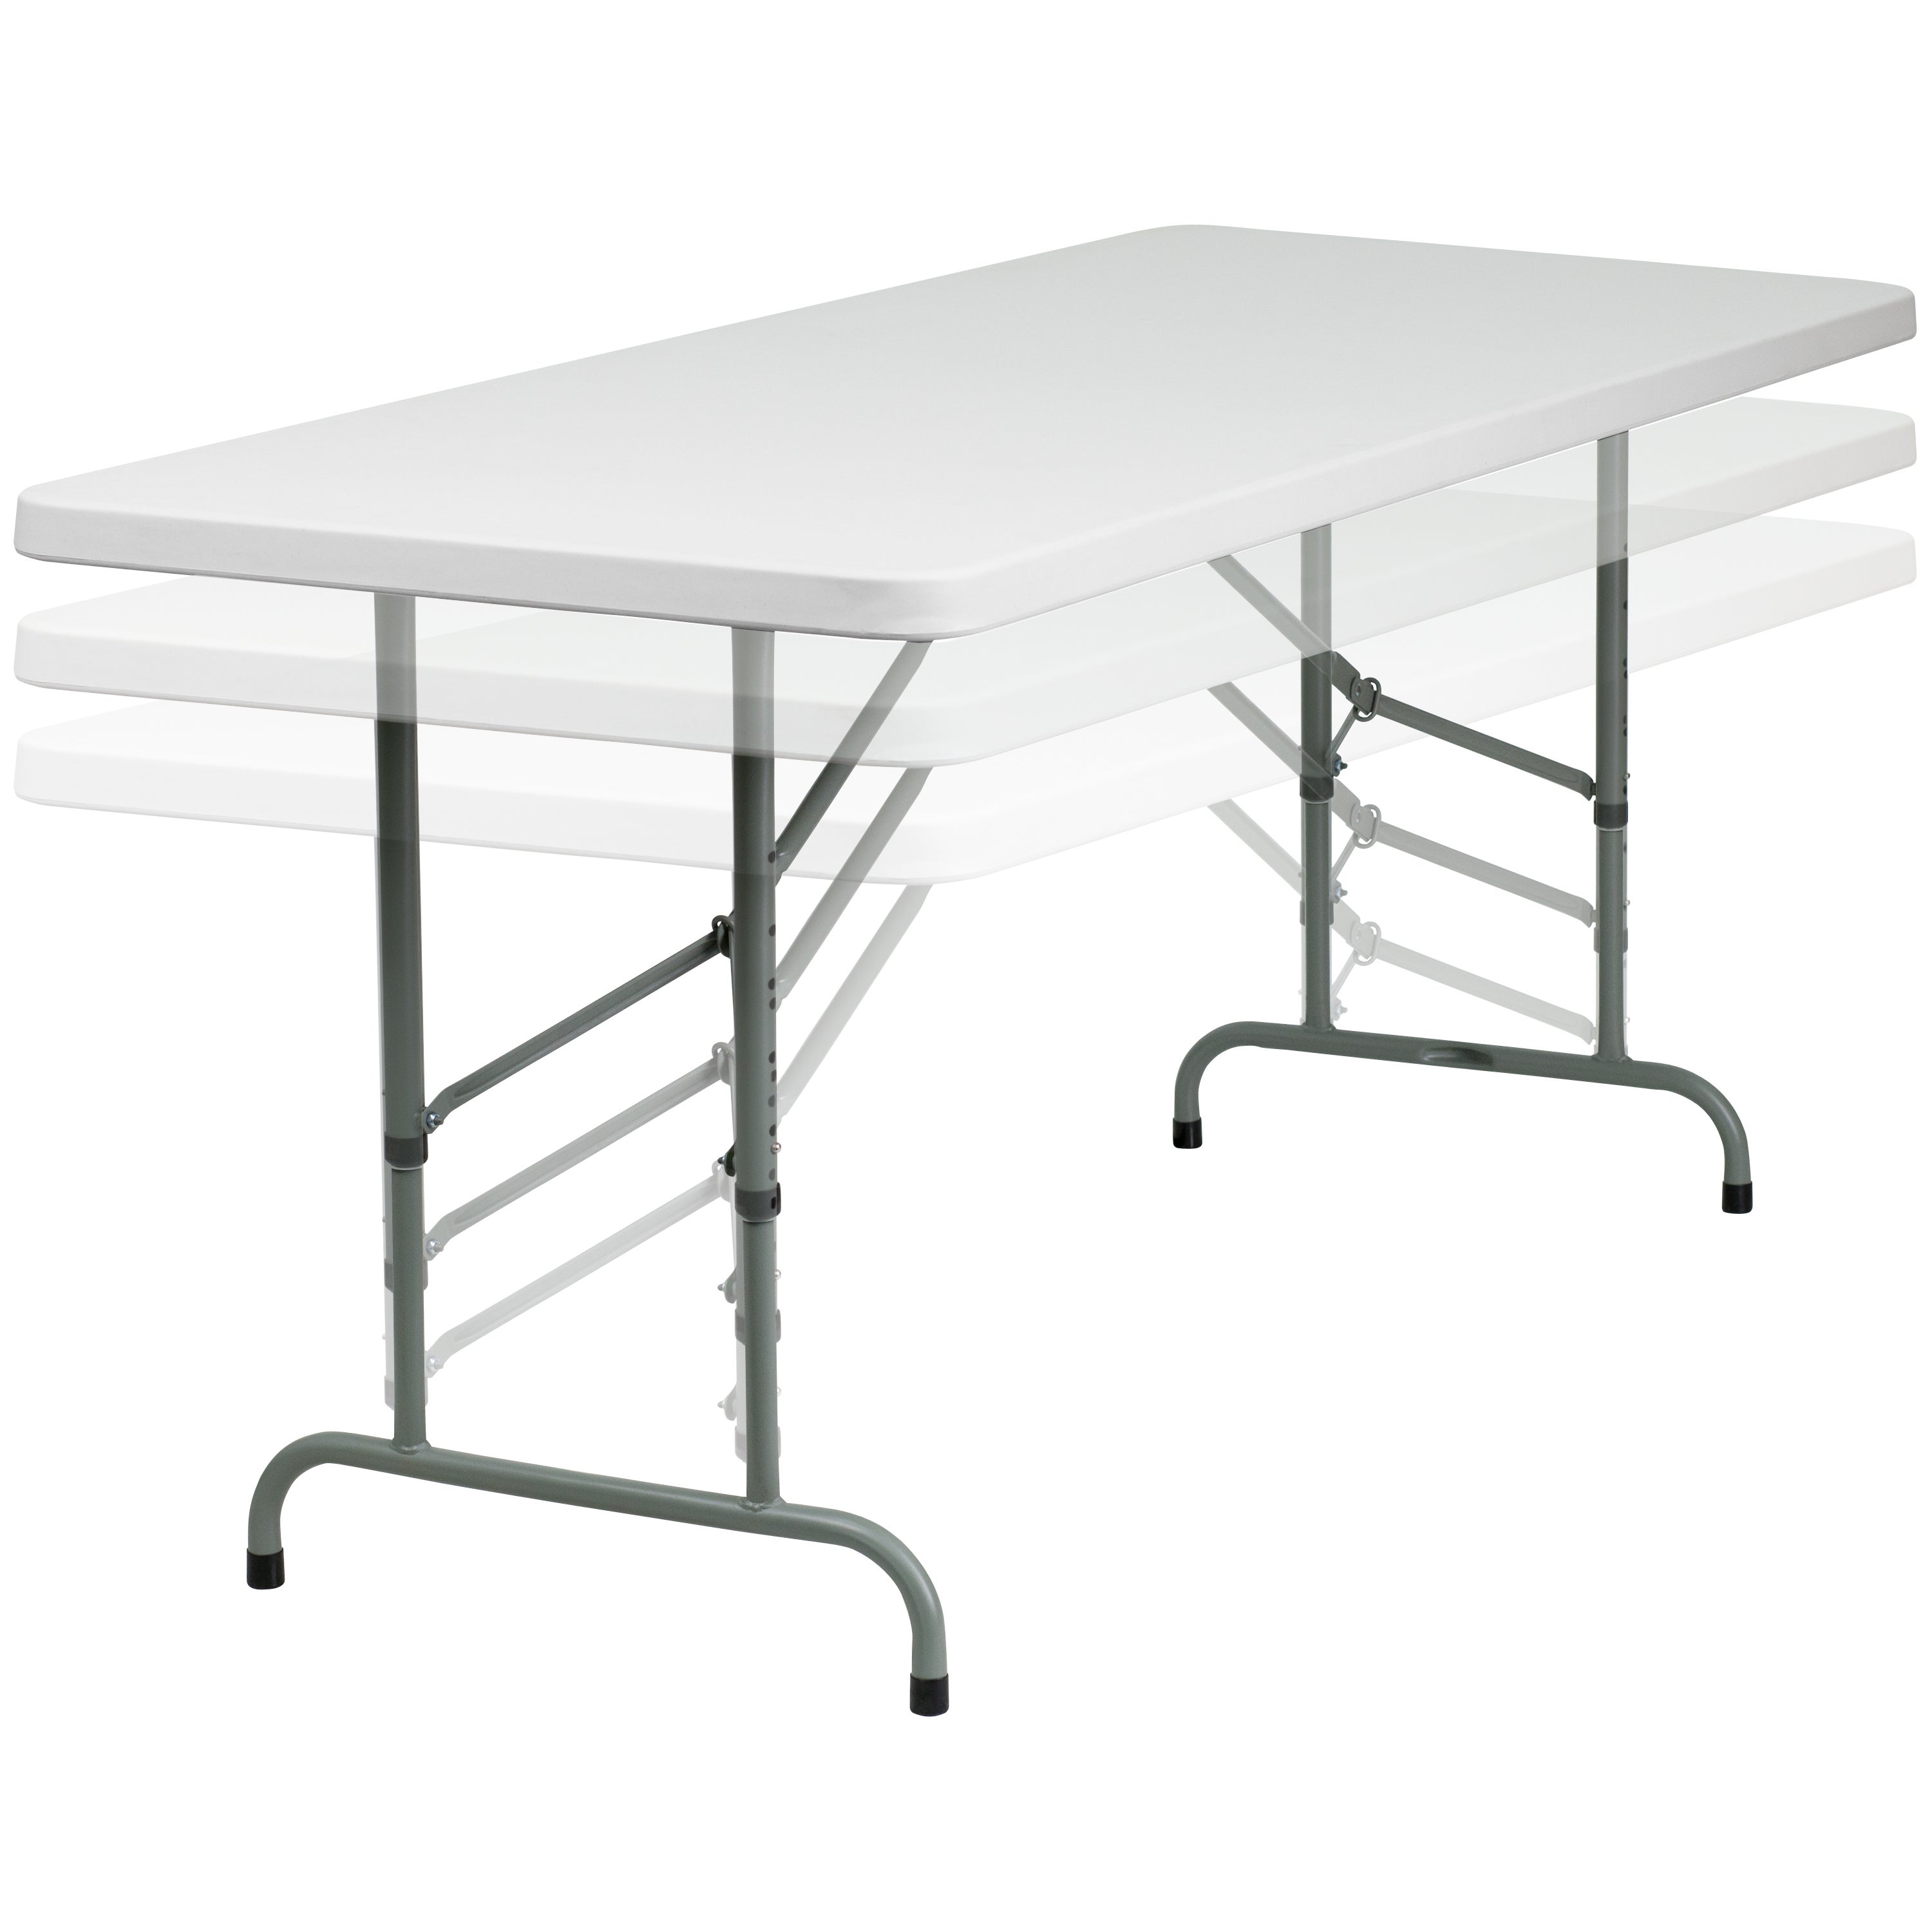 White Plastic Height Adjustable Folding Table   Free Shipping Today    Overstock   17479608